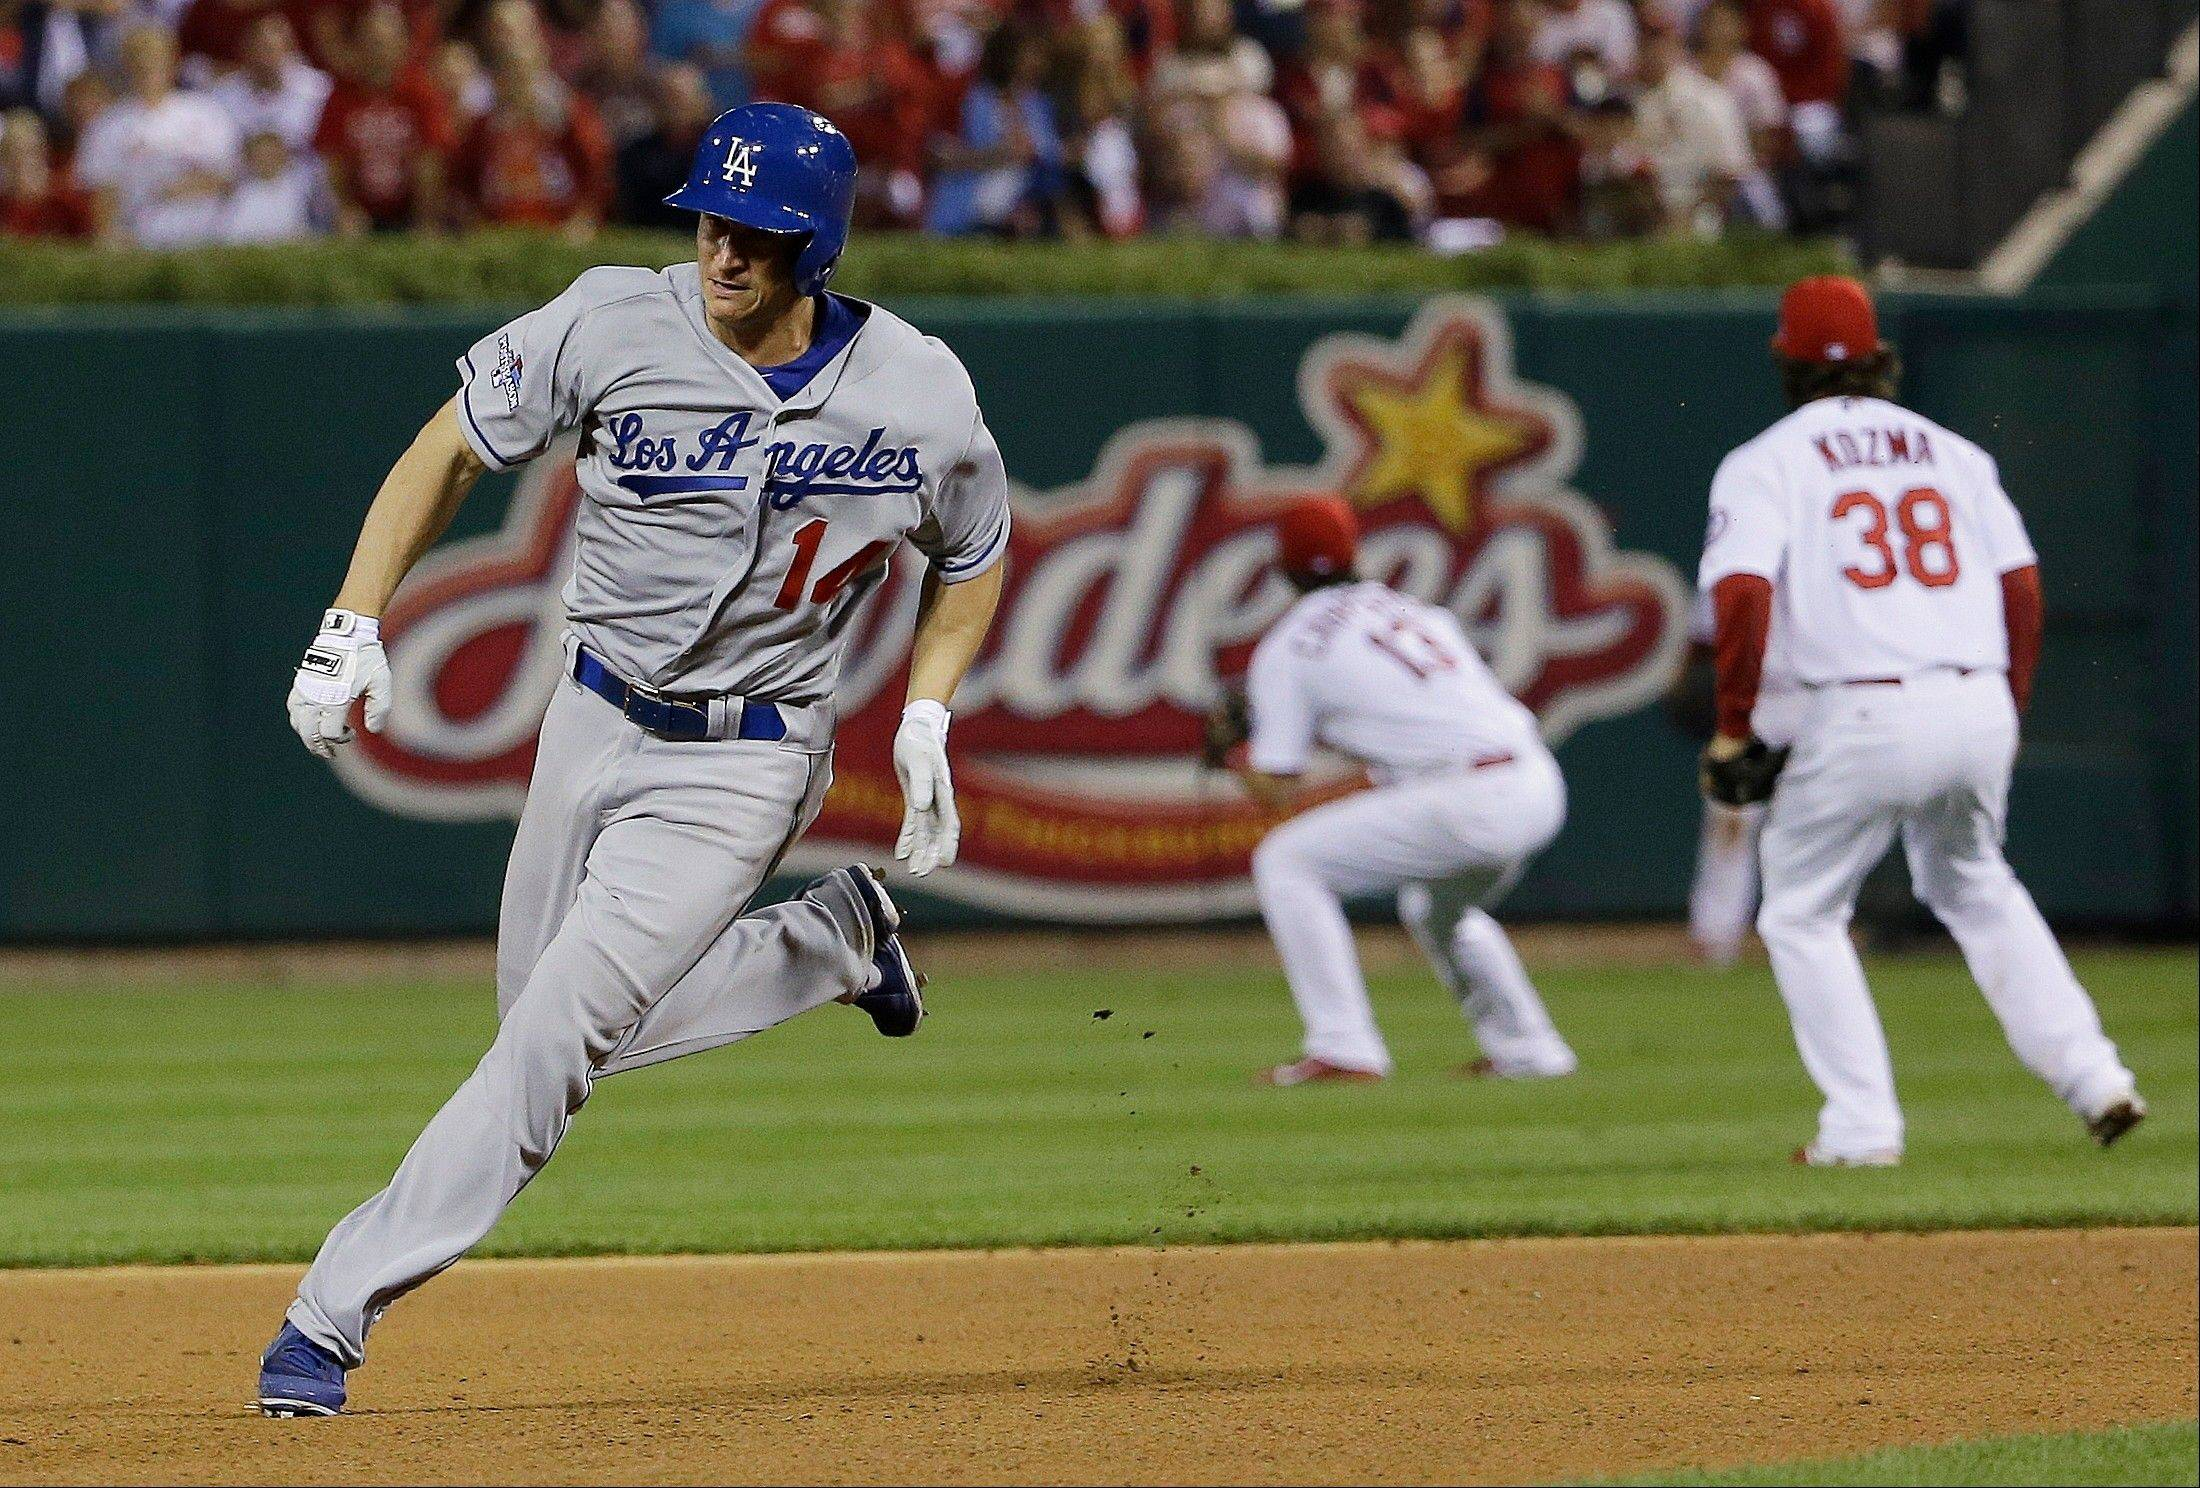 The Dodgers' Mark Ellis races to third for a triple during the 10th inning.